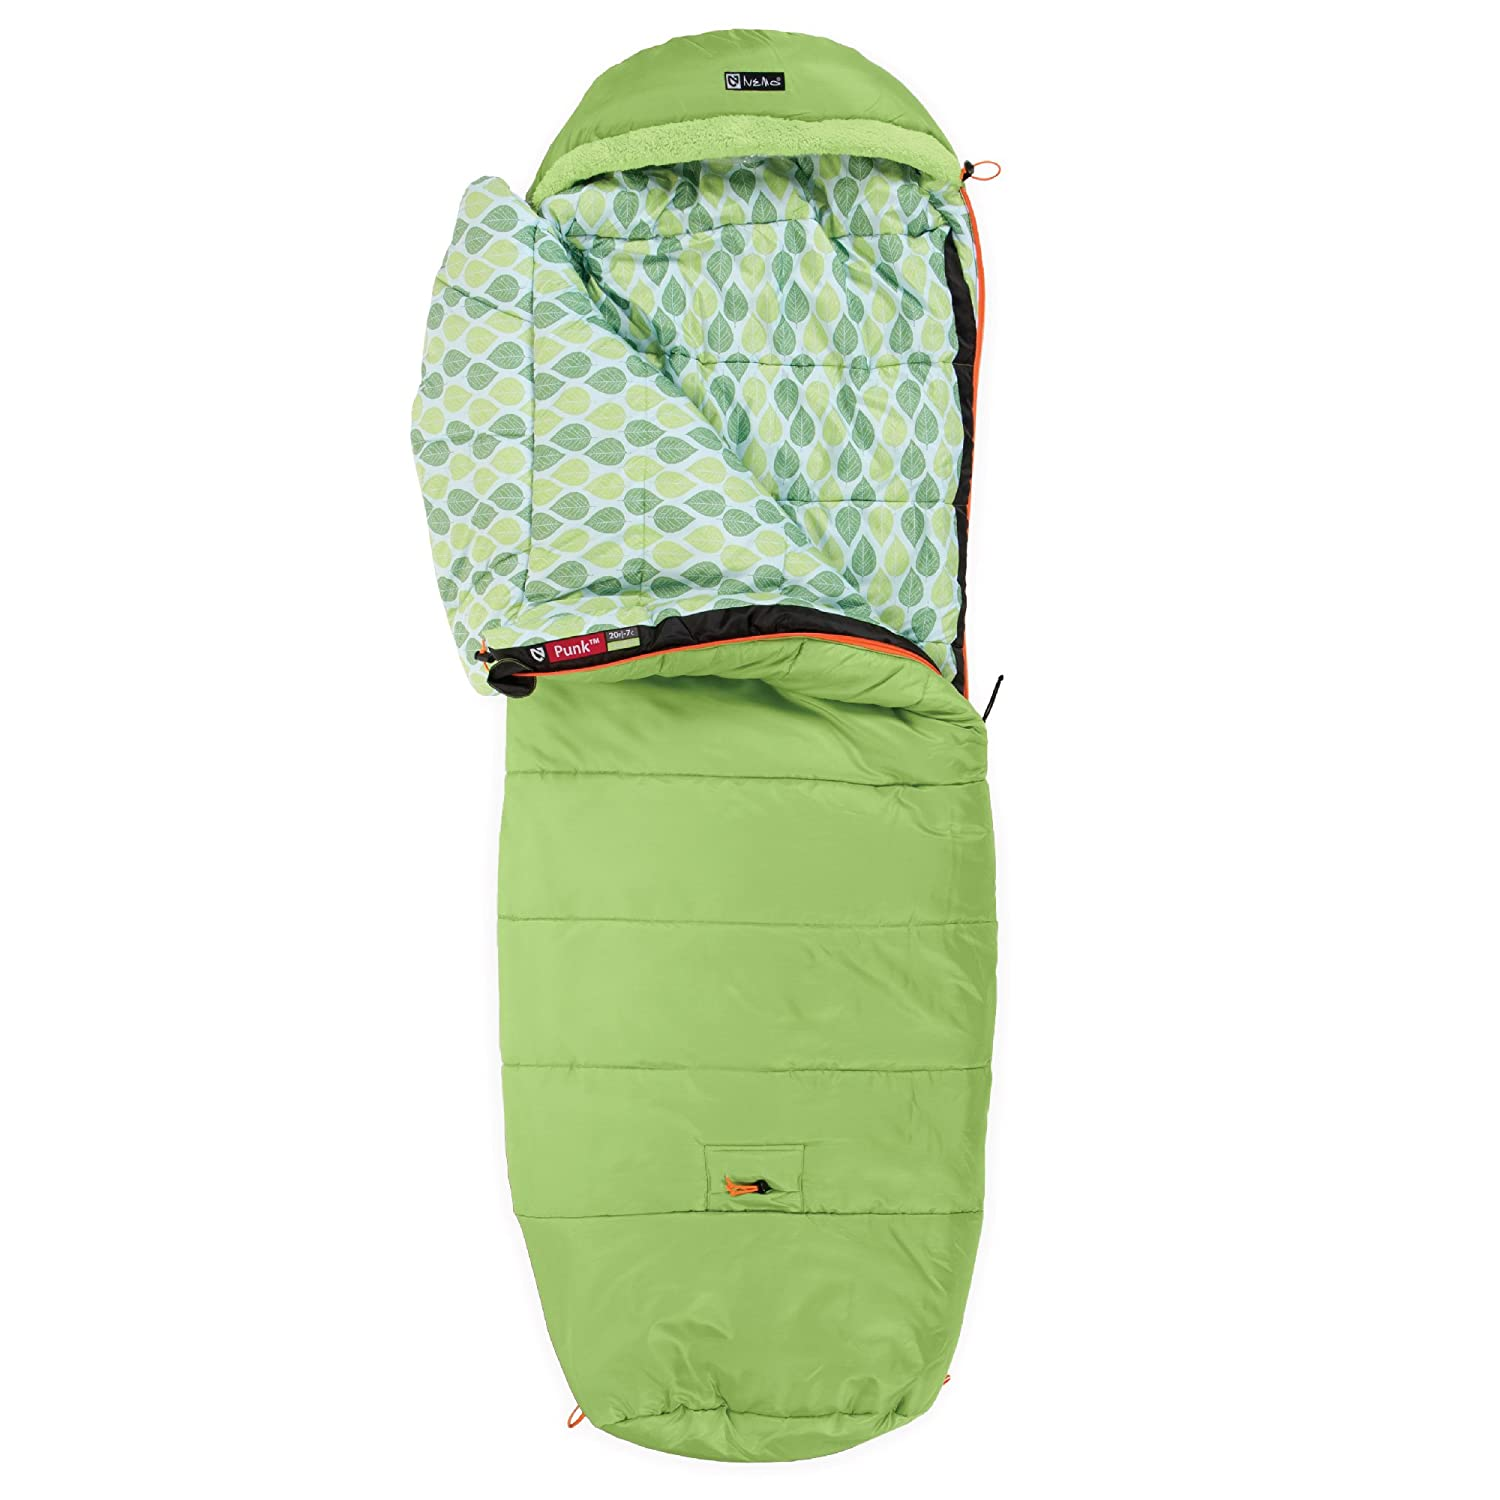 Nemo Punk 20-Degree Kids Sleeping Bag